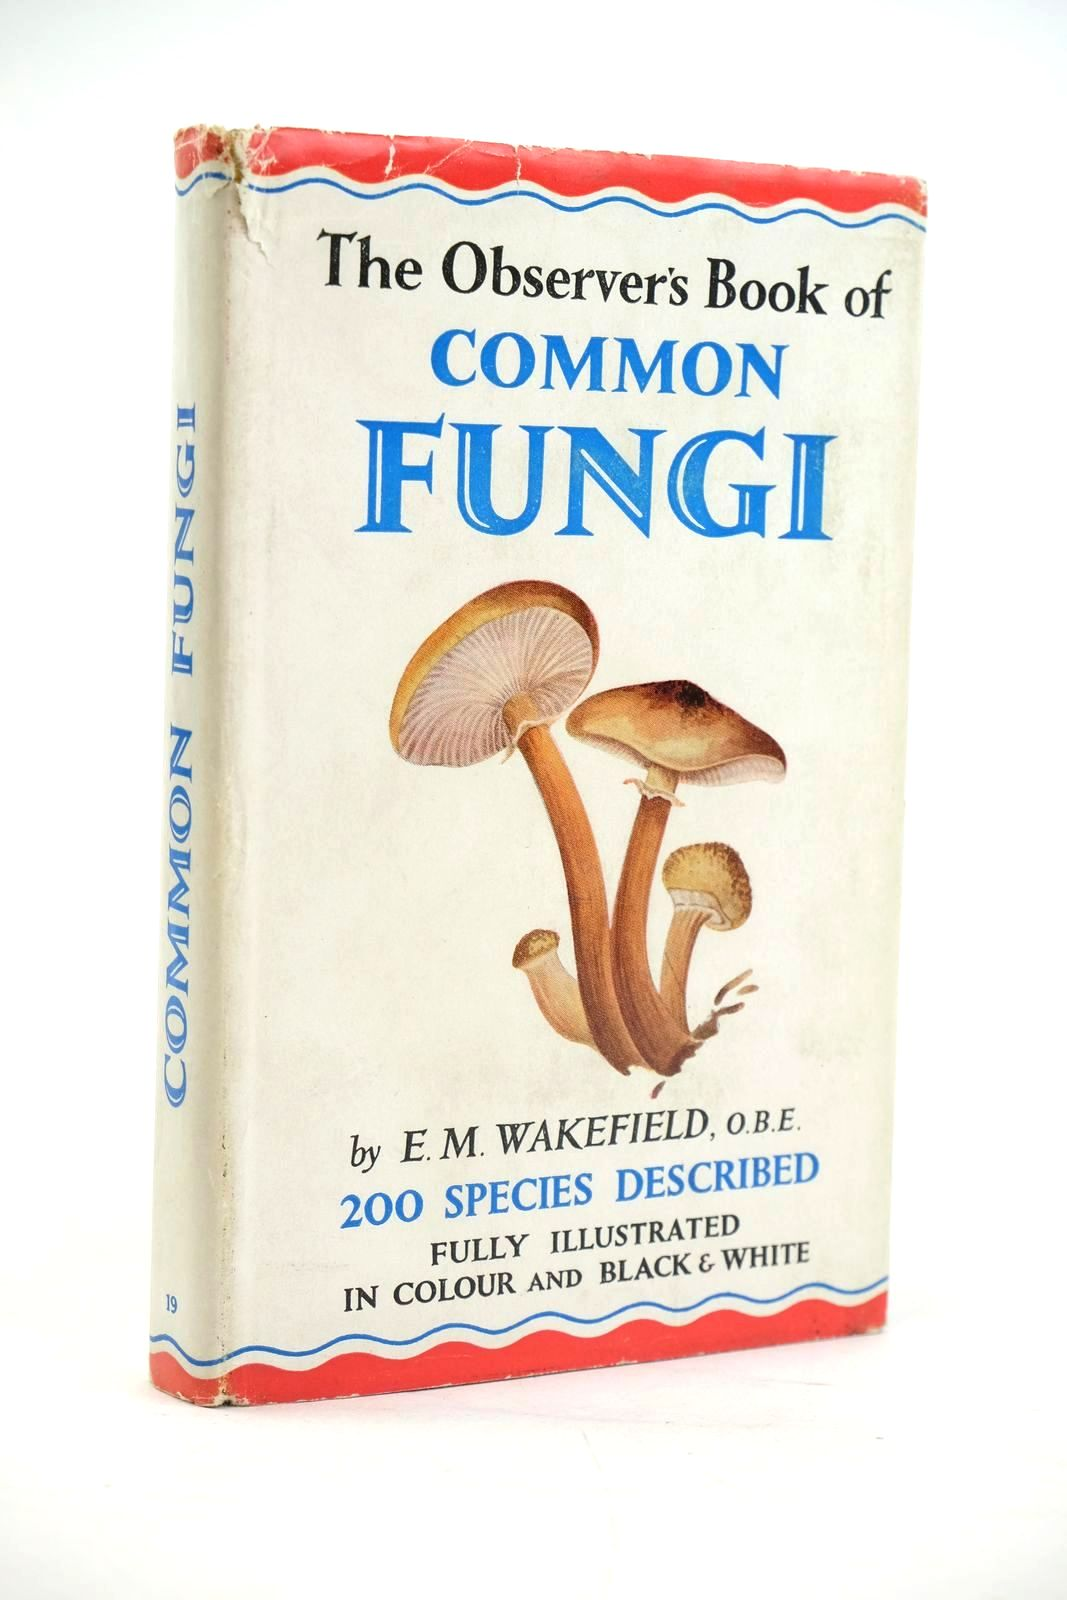 Photo of THE OBSERVER'S BOOK OF COMMON FUNGI written by Wakefield, E.M. illustrated by Mansell, Ernest C. published by Frederick Warne & Co Ltd. (STOCK CODE: 1319895)  for sale by Stella & Rose's Books